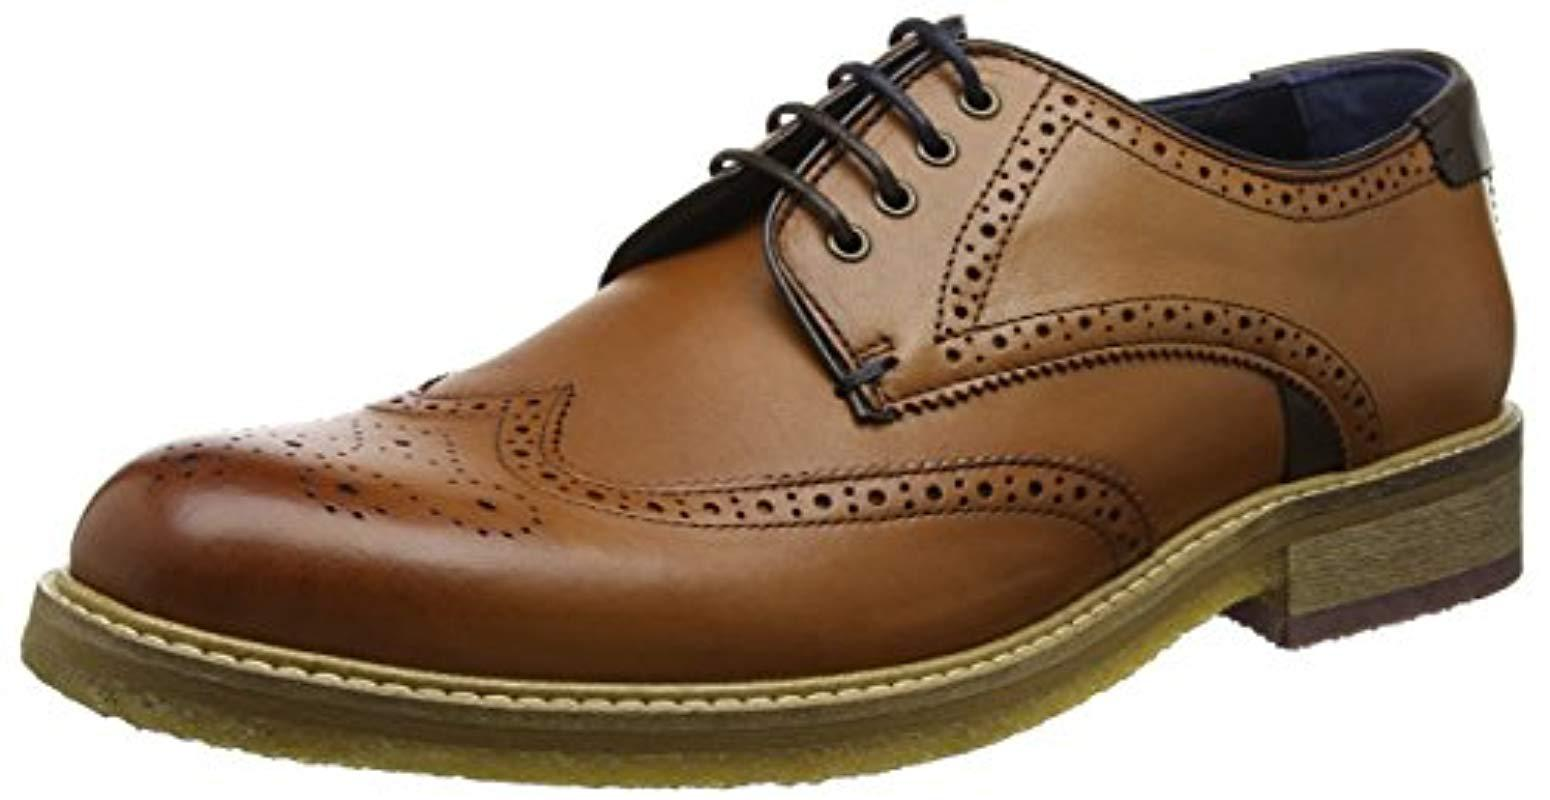 check out f4af0 d9e6a ted-baker-Brown-Tan-Prycce-Shoes.jpeg